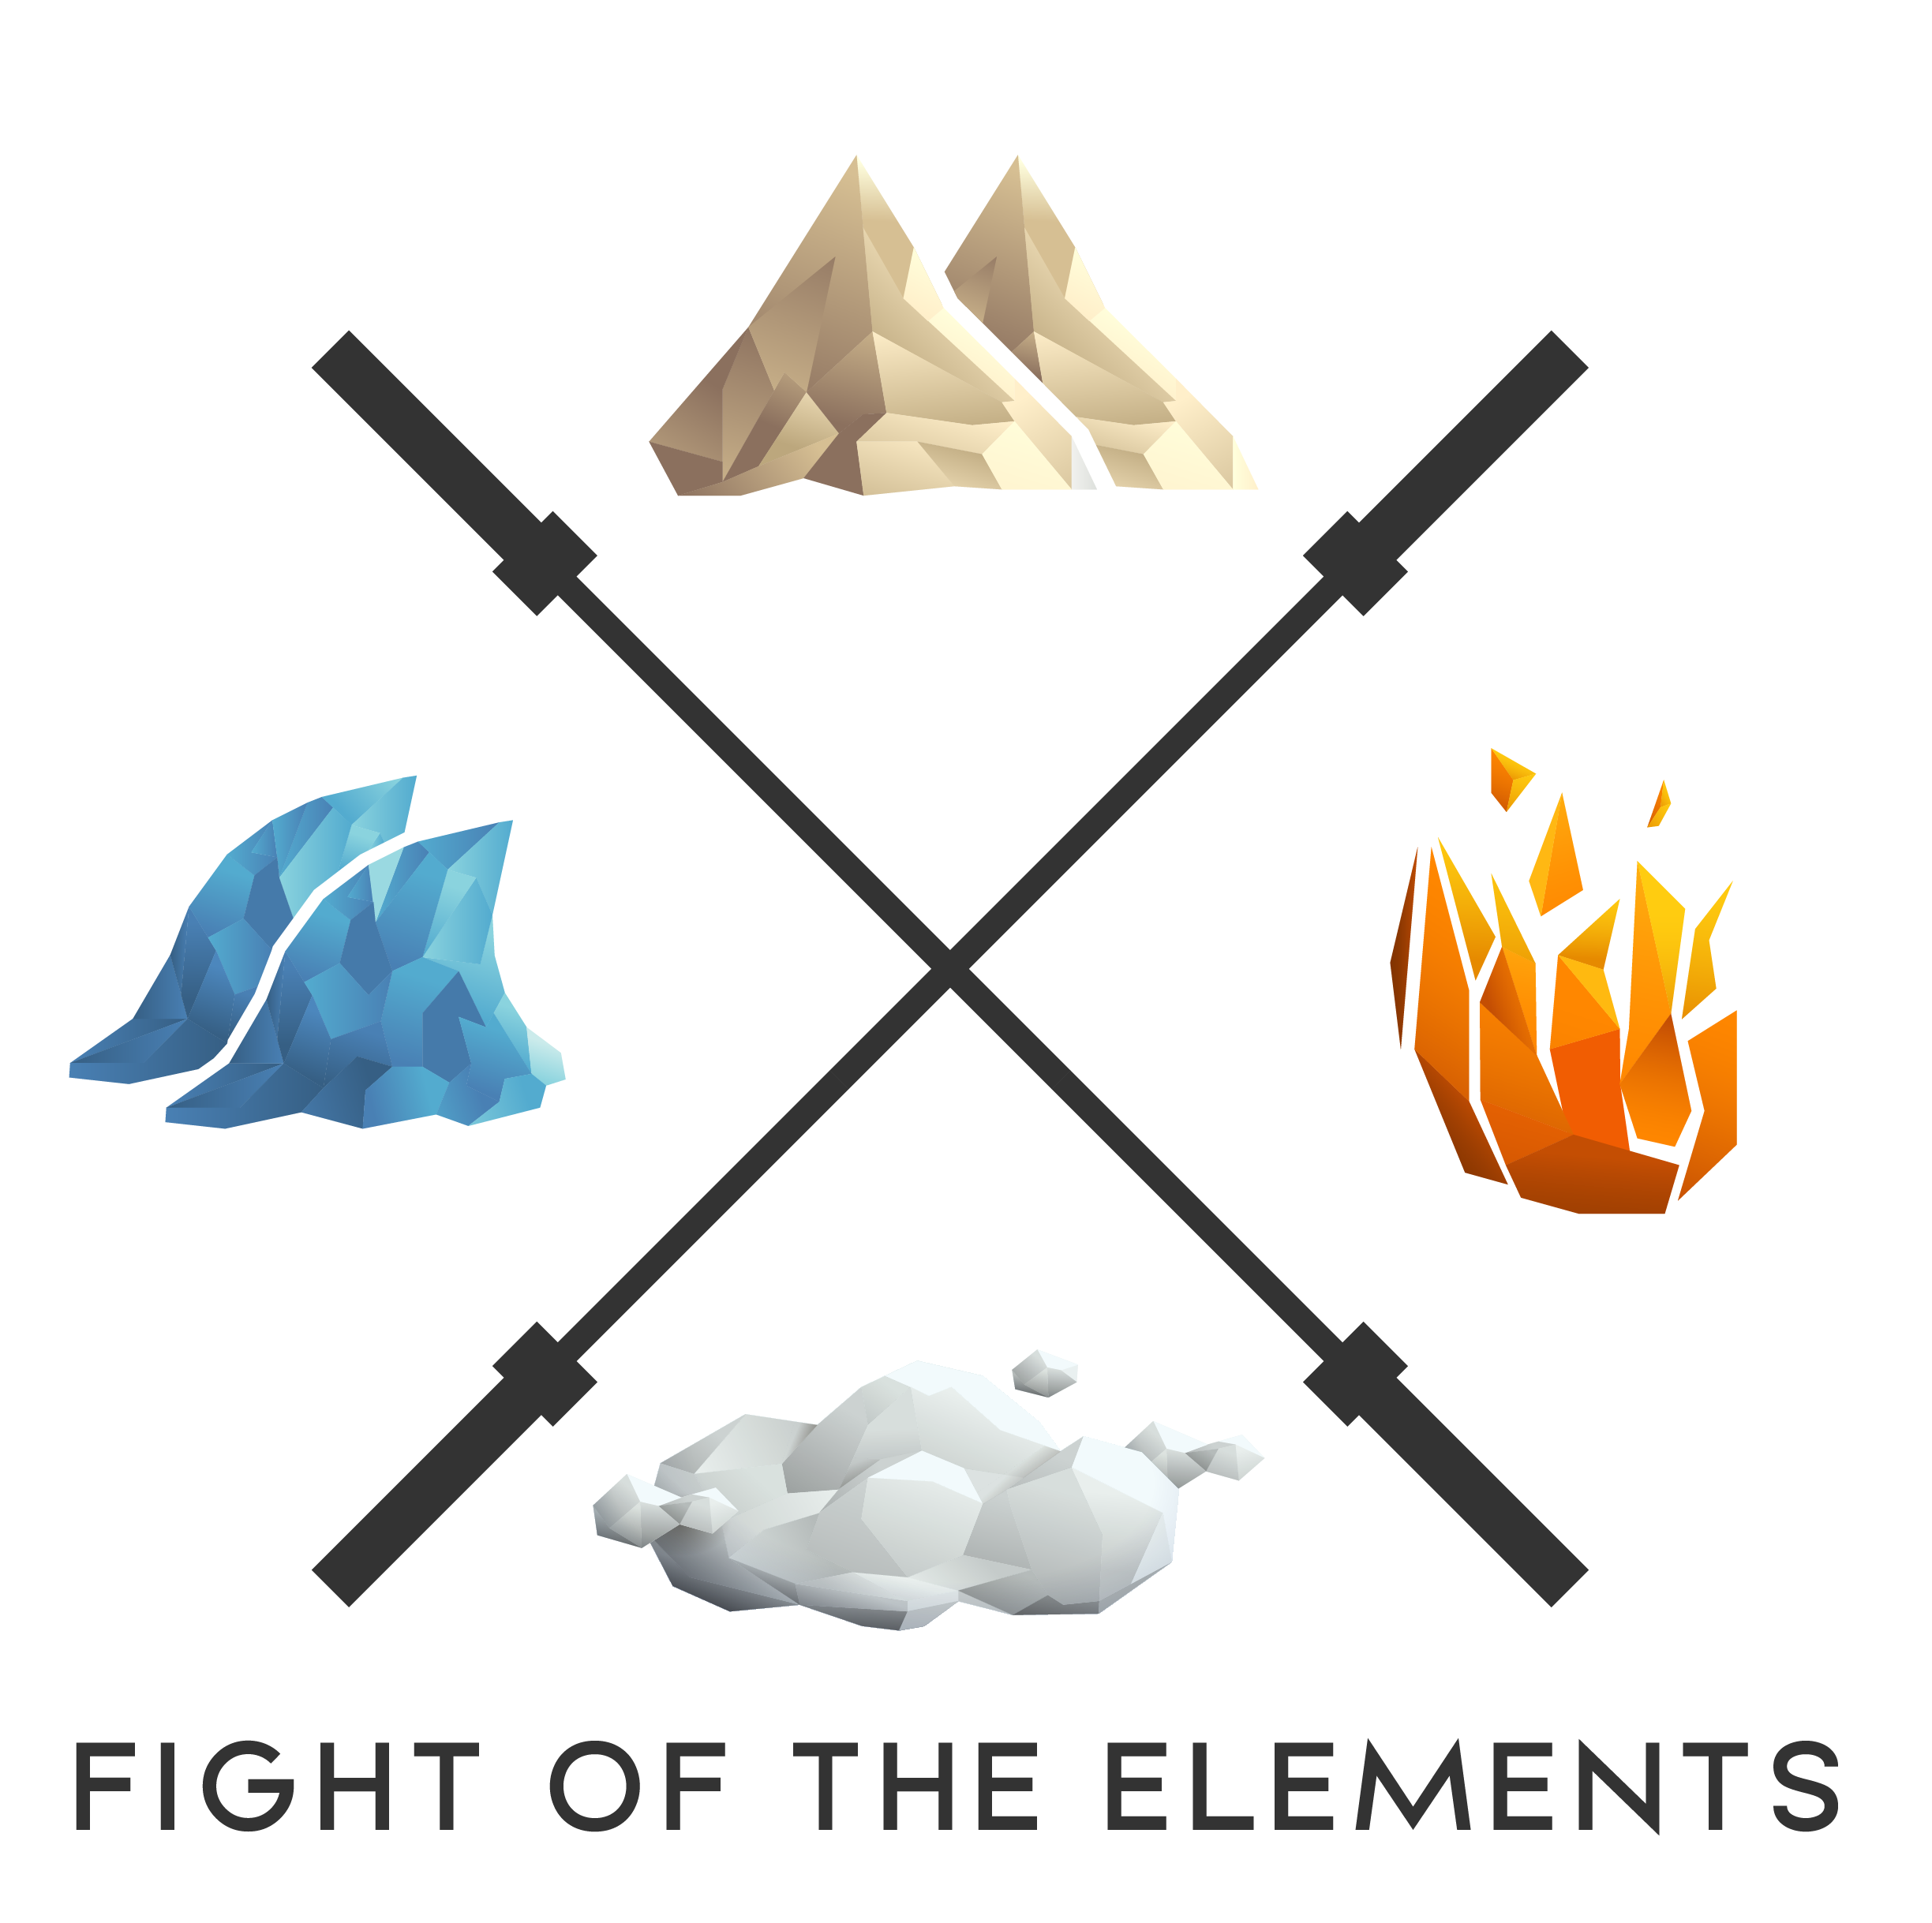 fightoftheelements